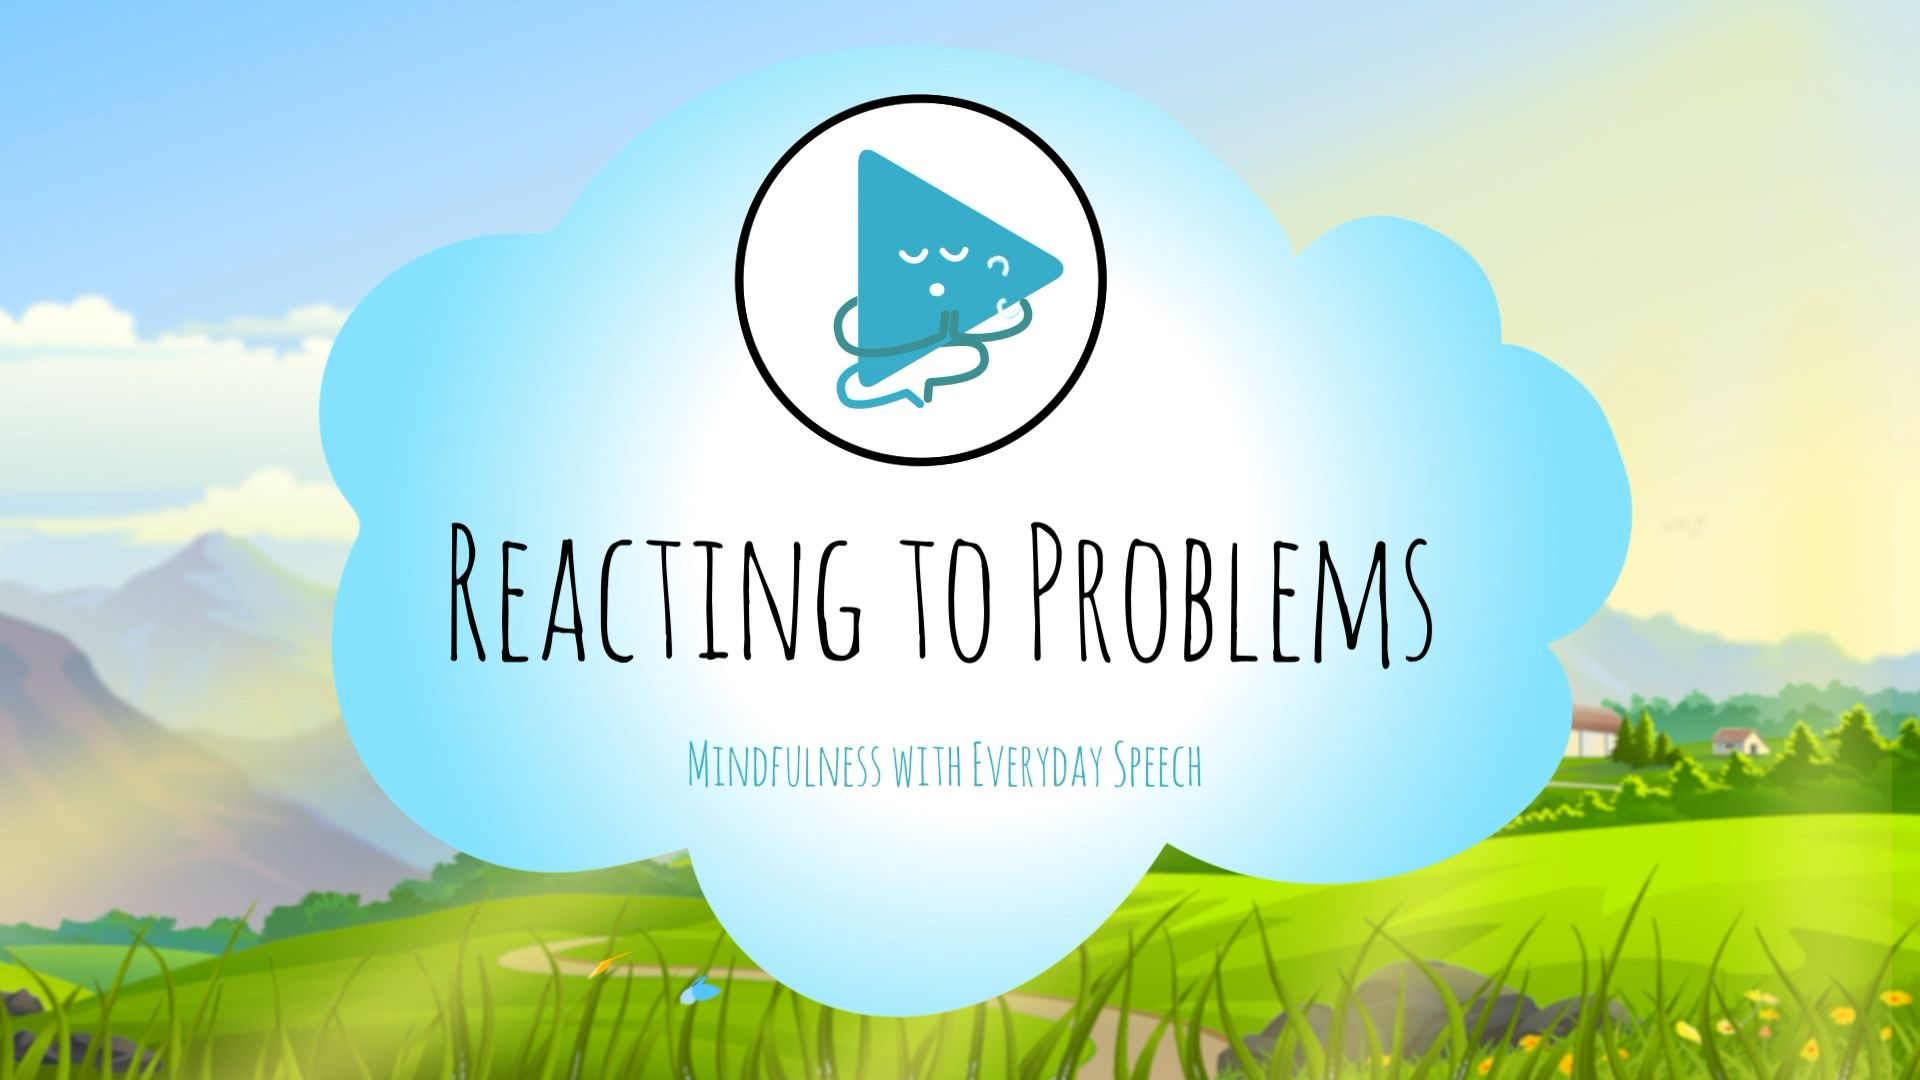 Reacting to Problems